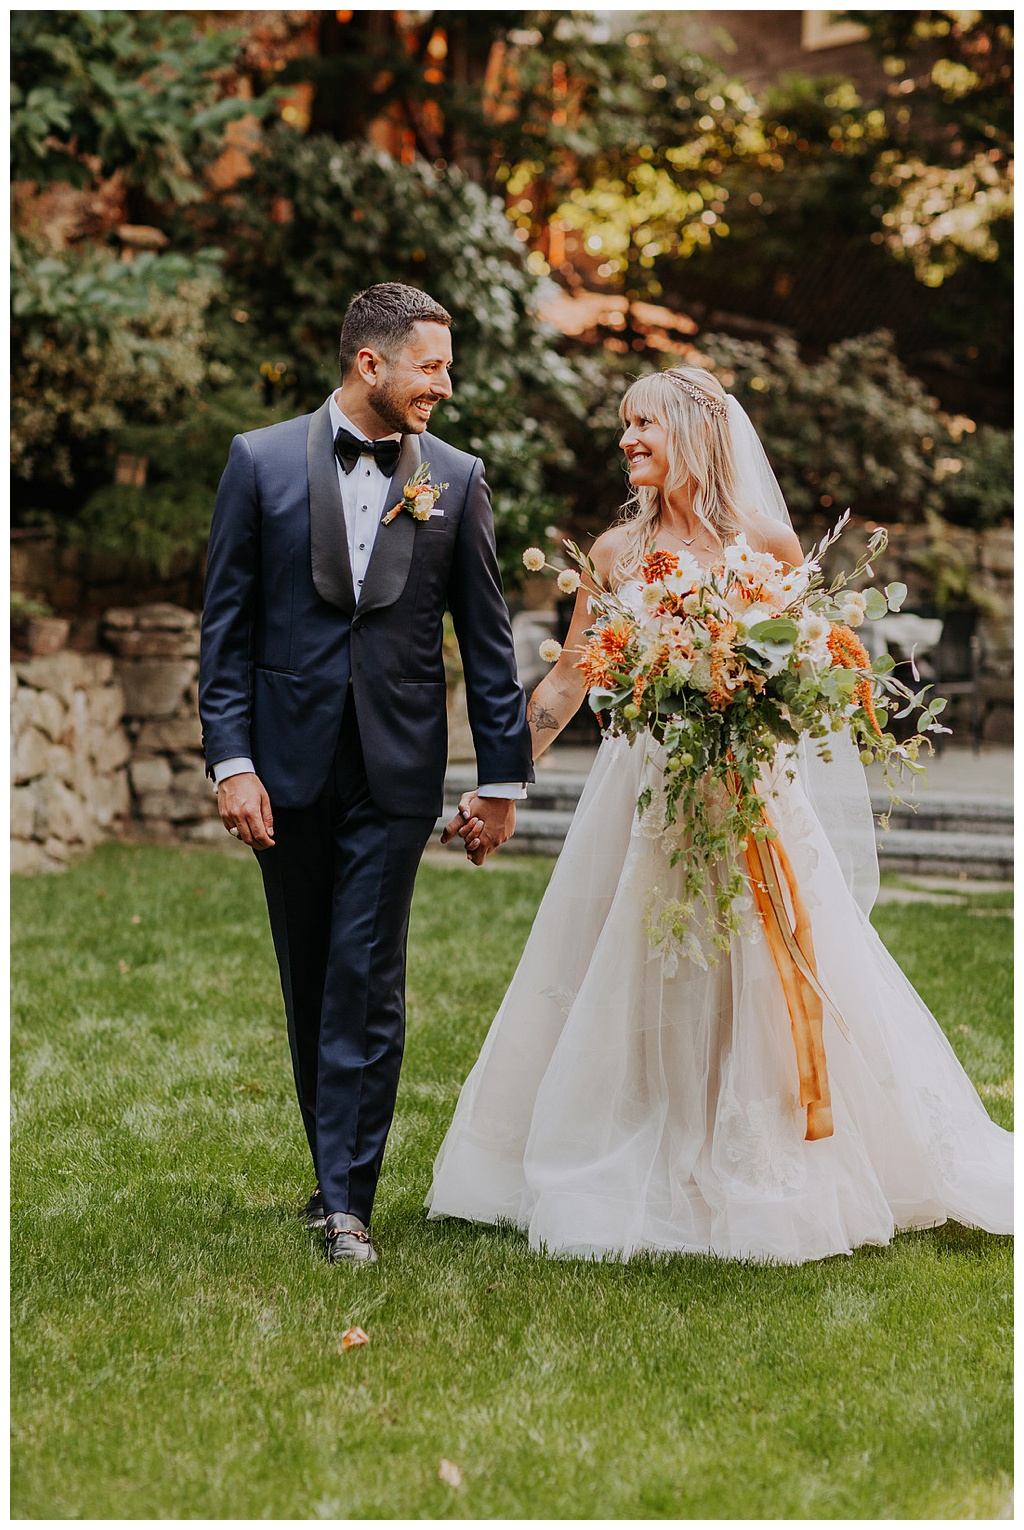 a bride and groom holding hands, walking across grass, bride holding a bouquet of wedding flowers with long silk ribbon